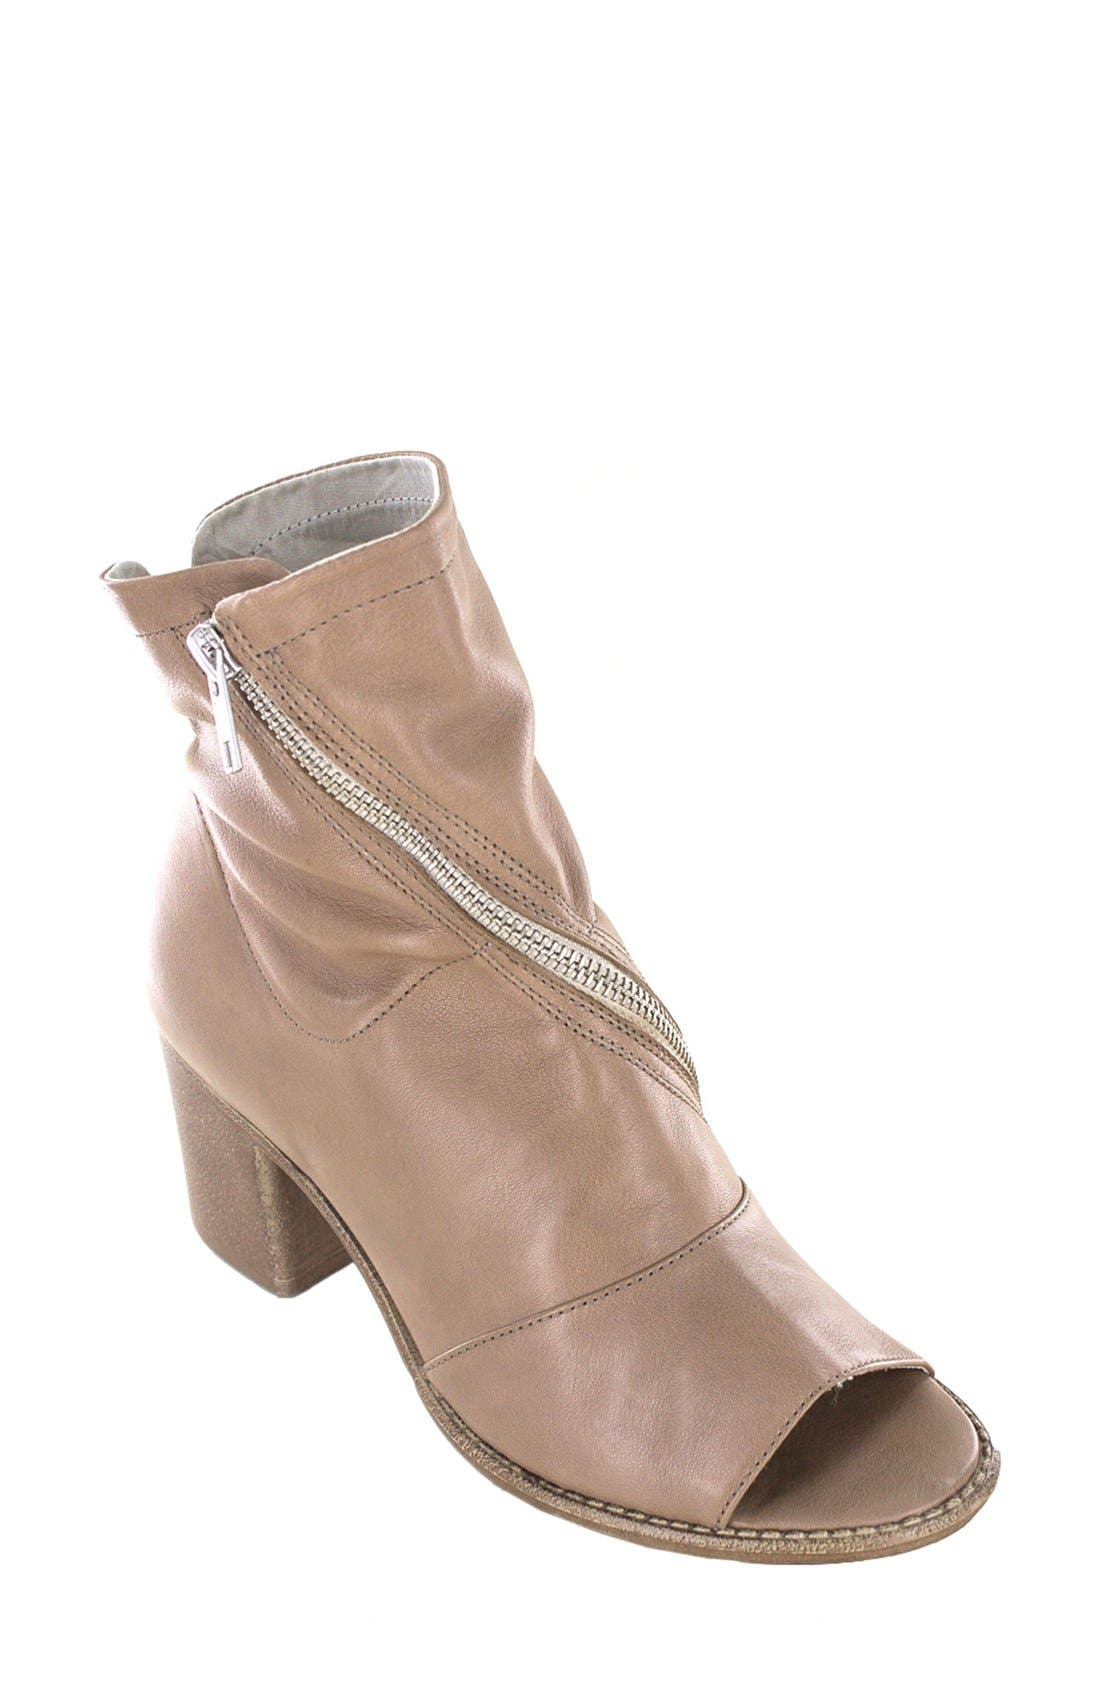 'Fantasia' Open Toe Bootie,                             Main thumbnail 1, color,                             252